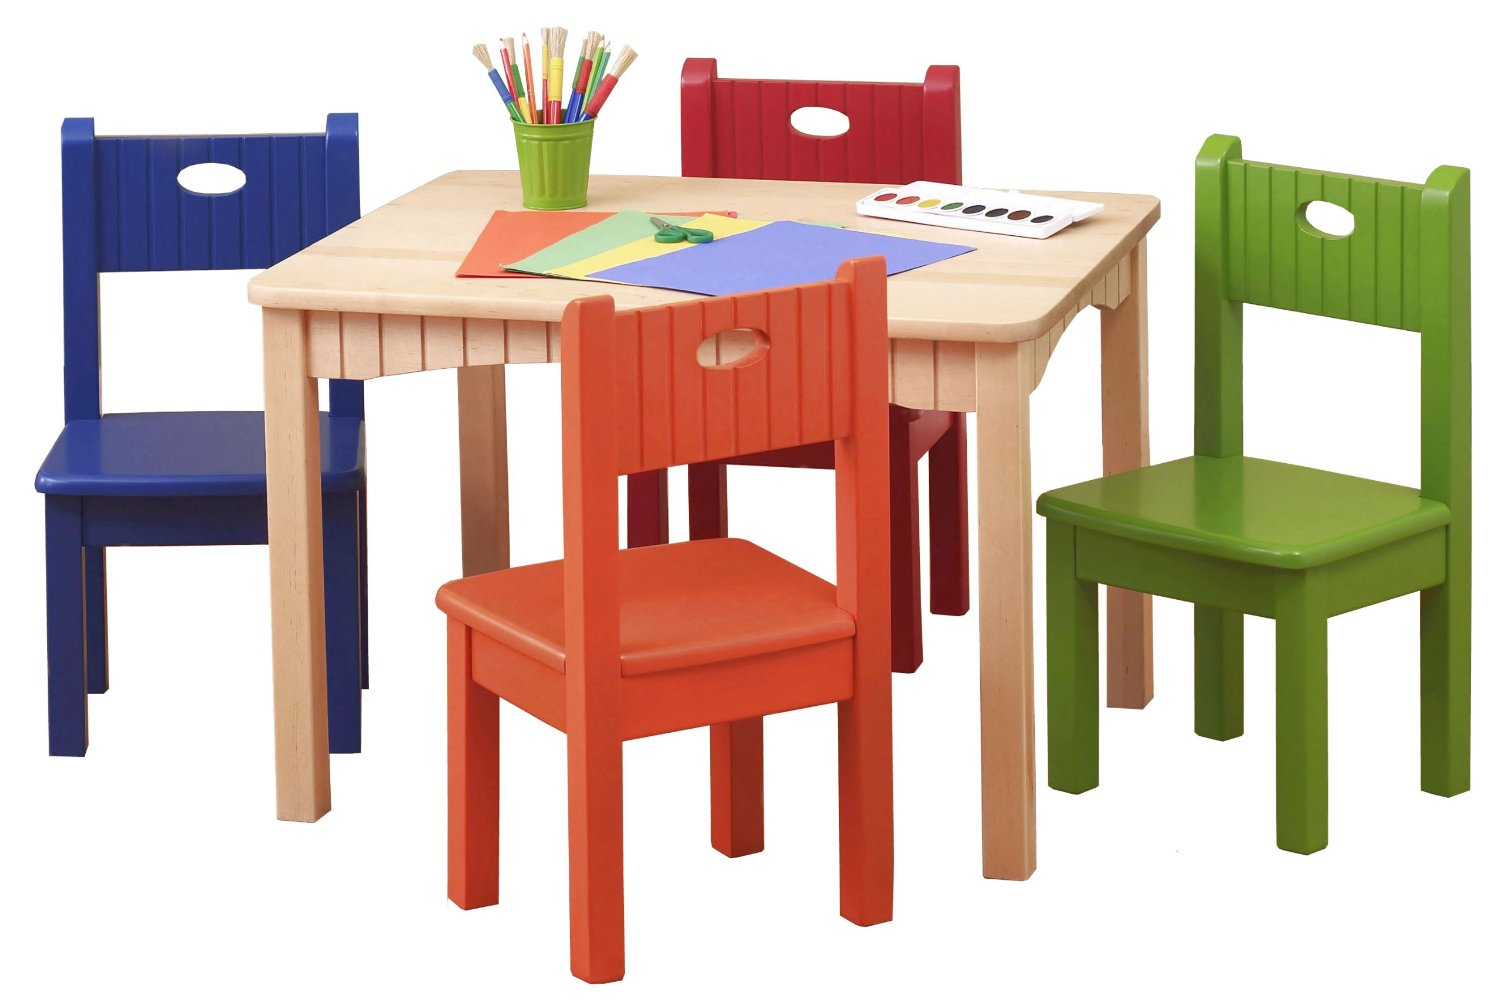 Ordinaire Wooden Pink Table And Colorful Chairs For Kids